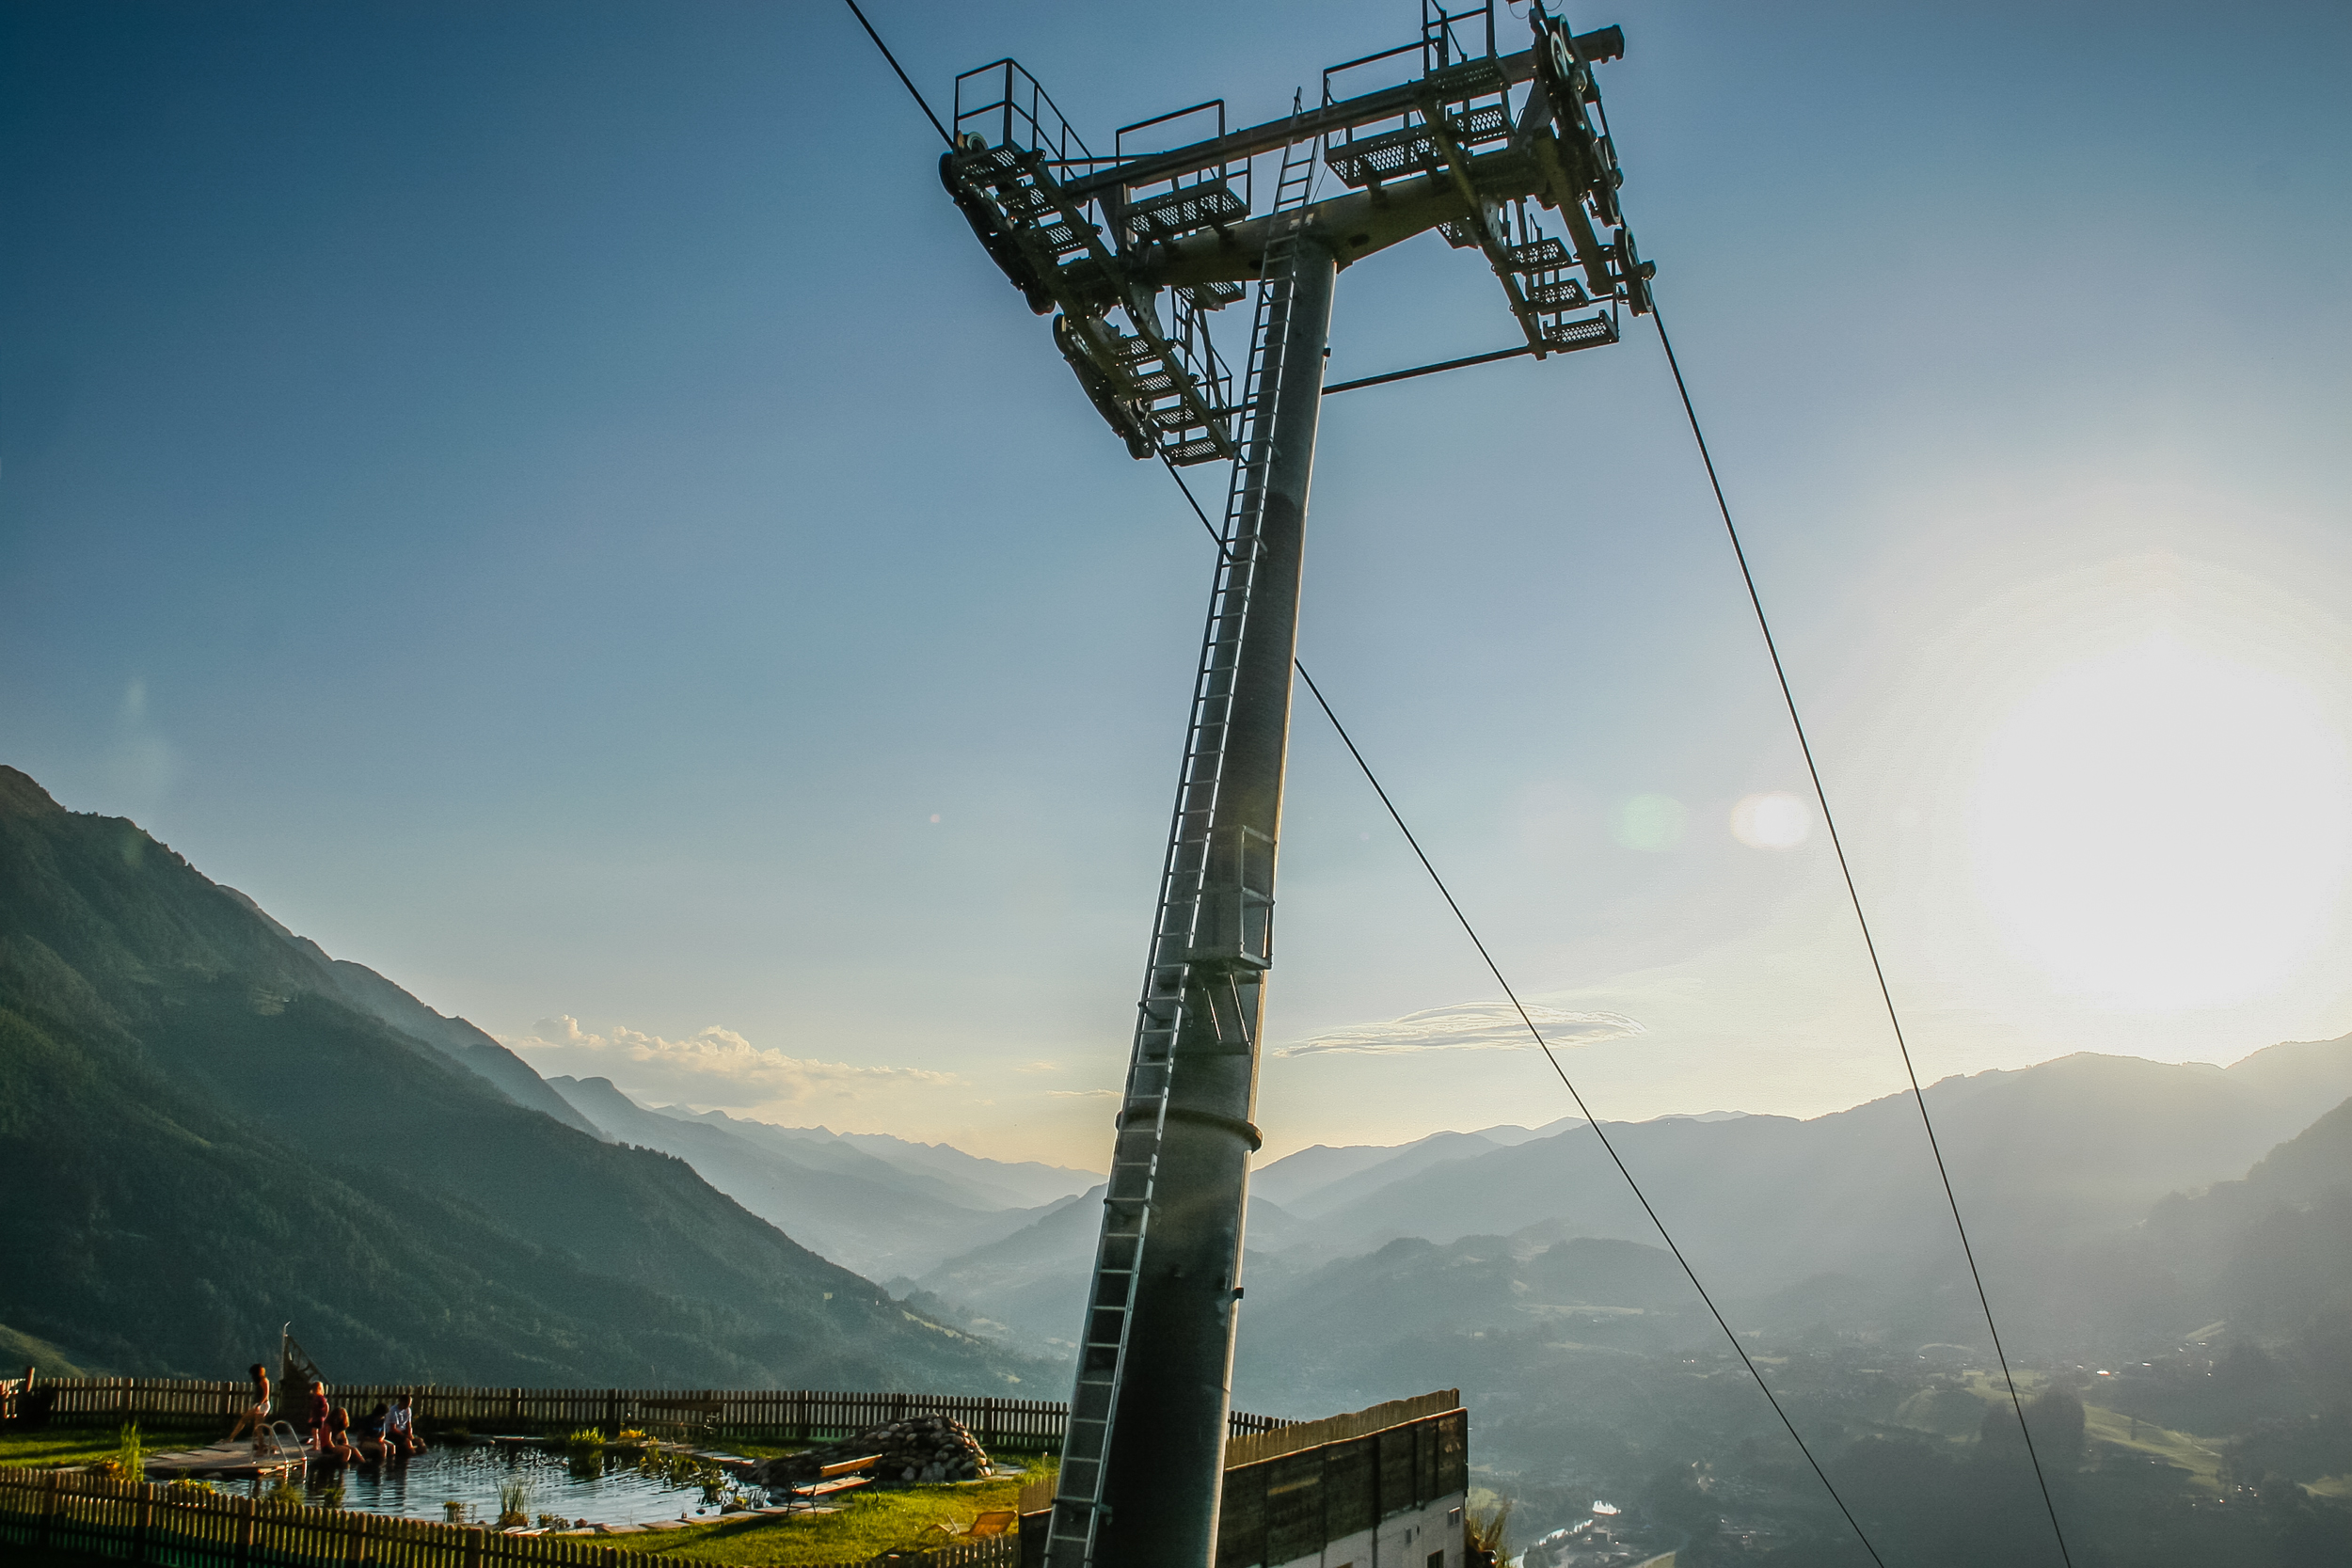 What a site for an awesome pool party.  That ski lift goes to the Alpendorf Ski area in Austria.